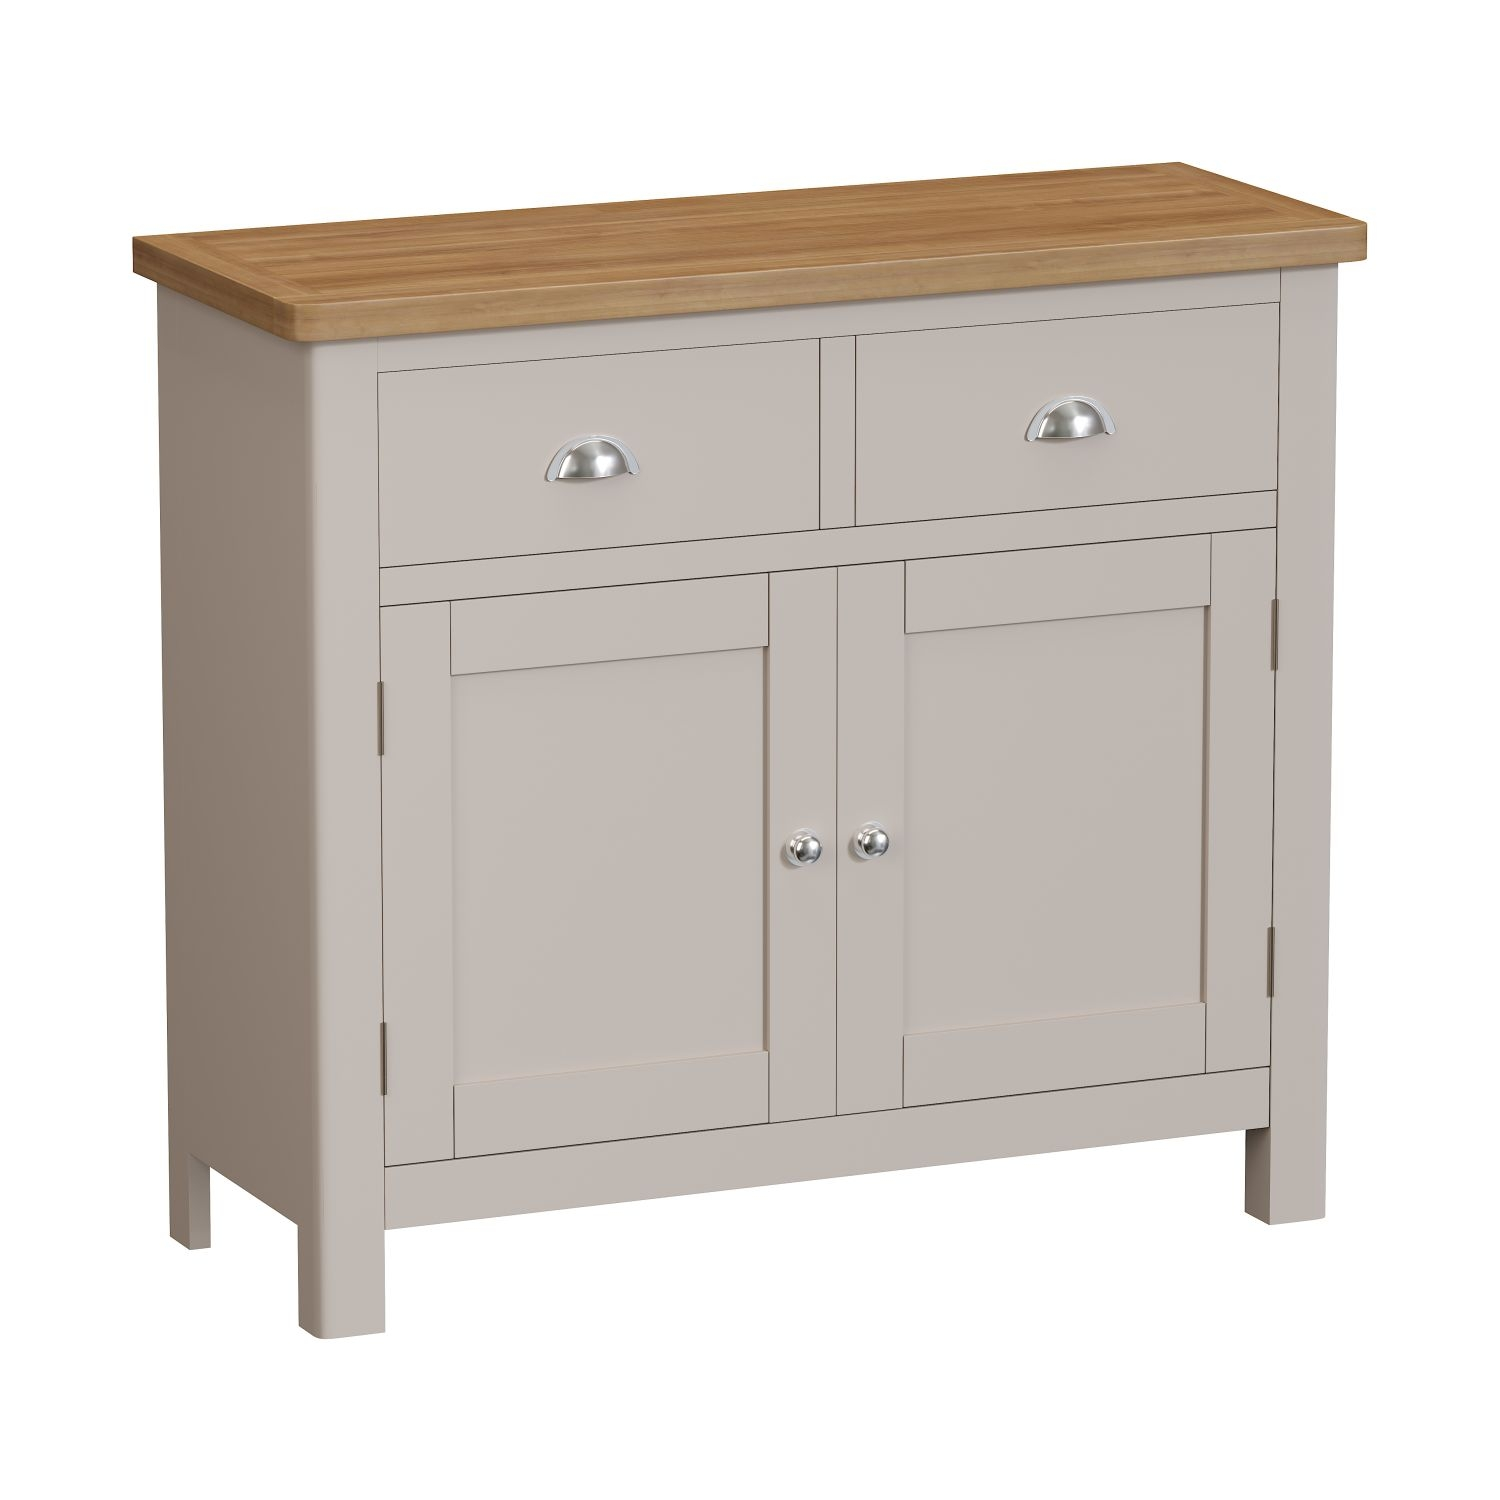 Image of Casa Portland Small Sideboard